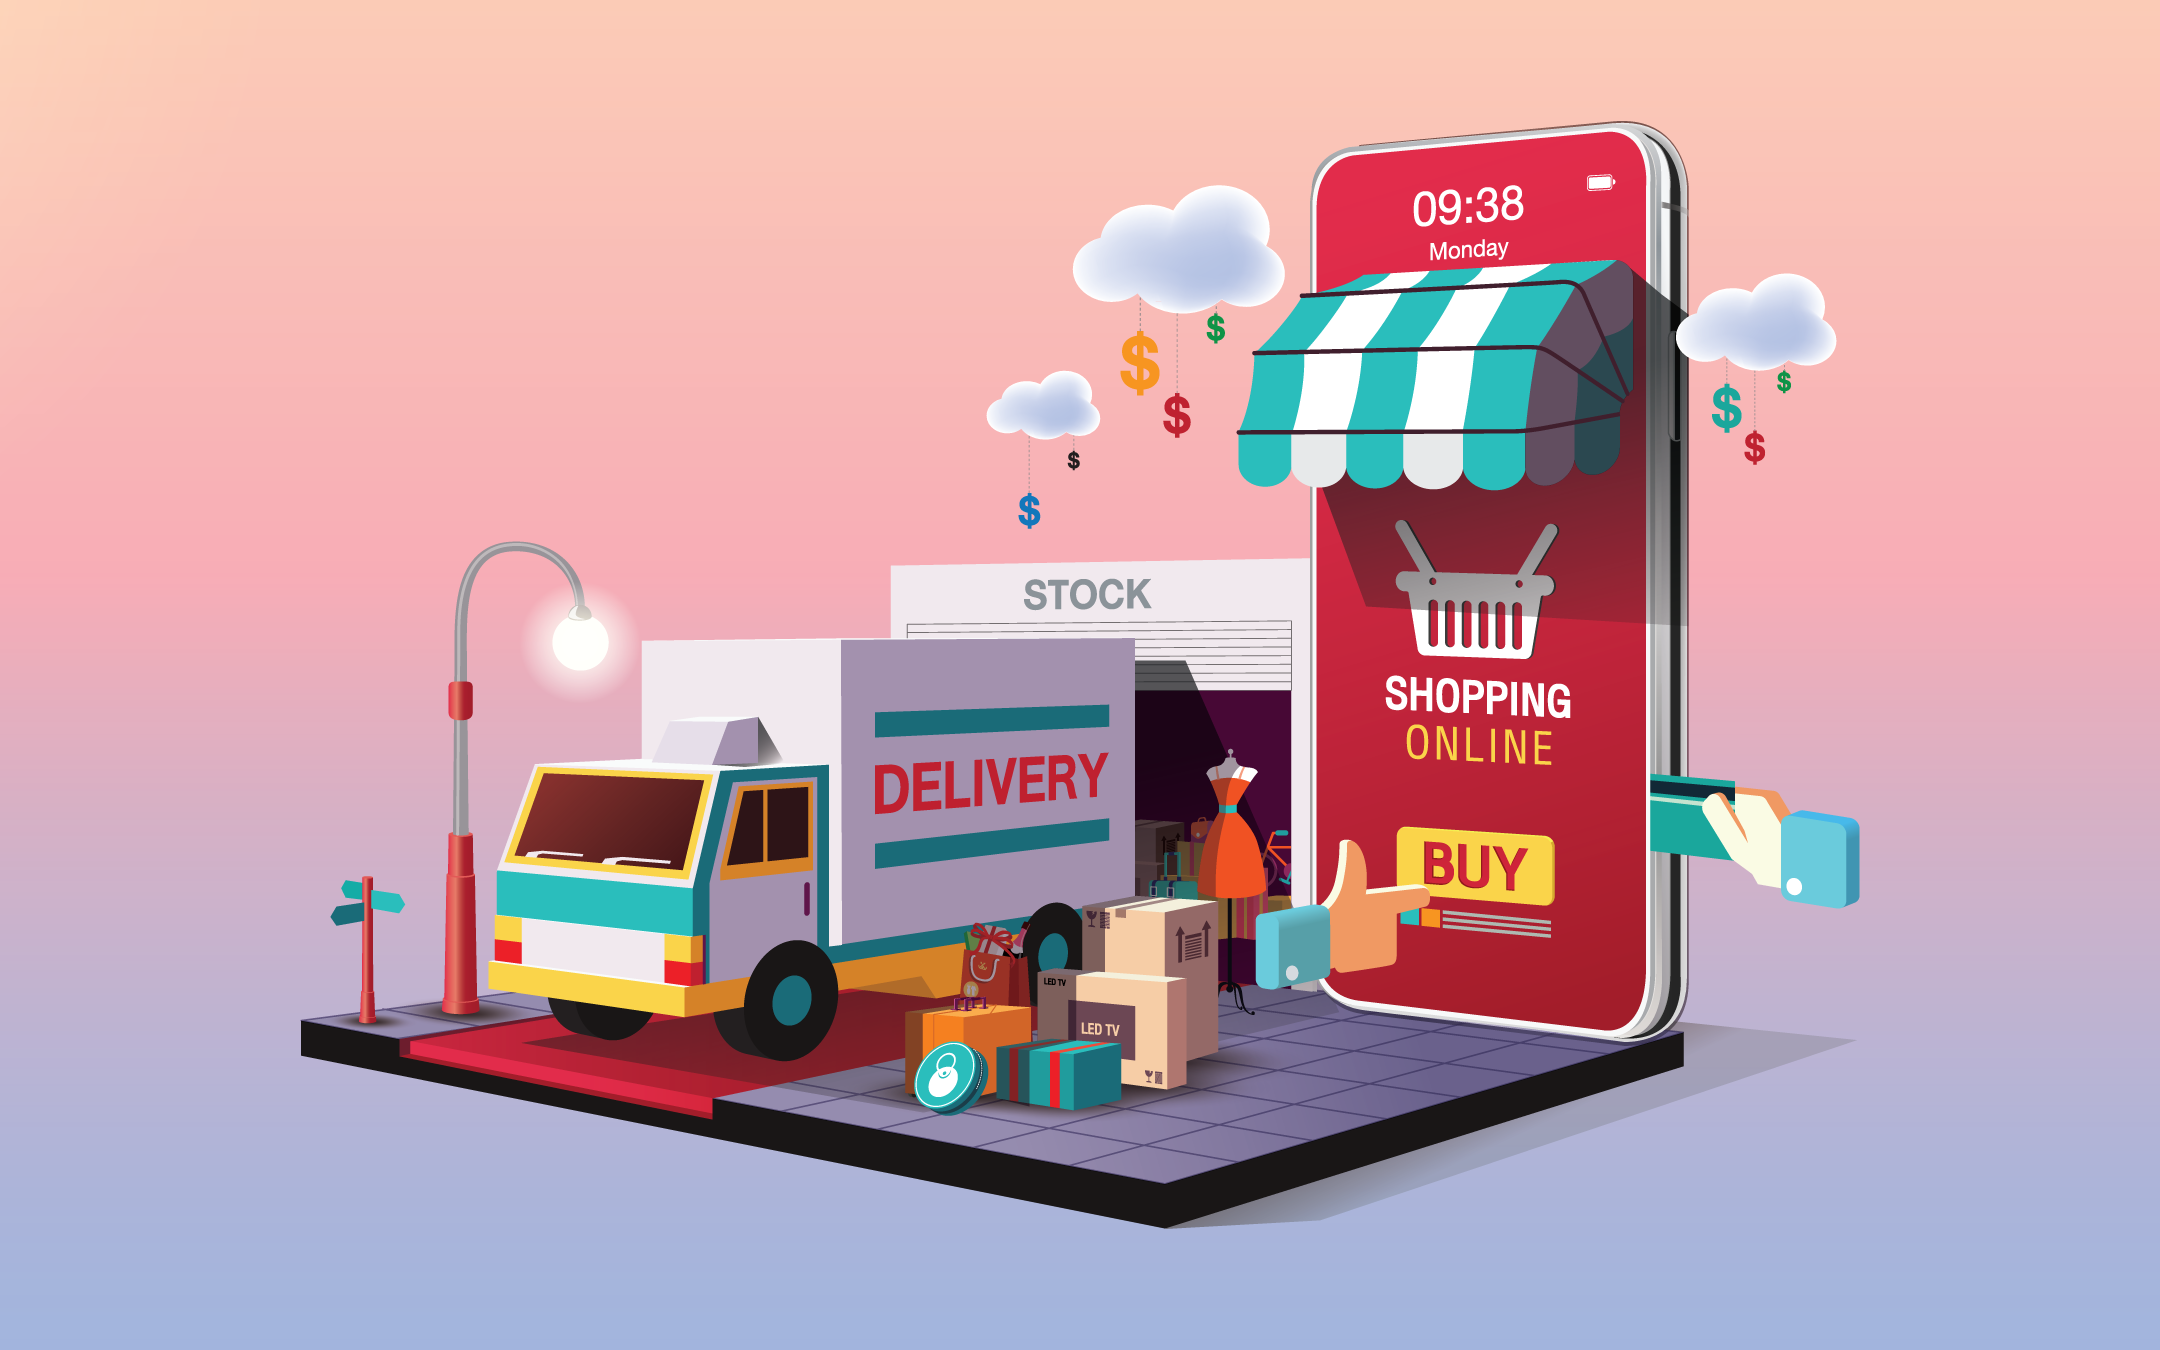 illustration of online shopping from mobile phone